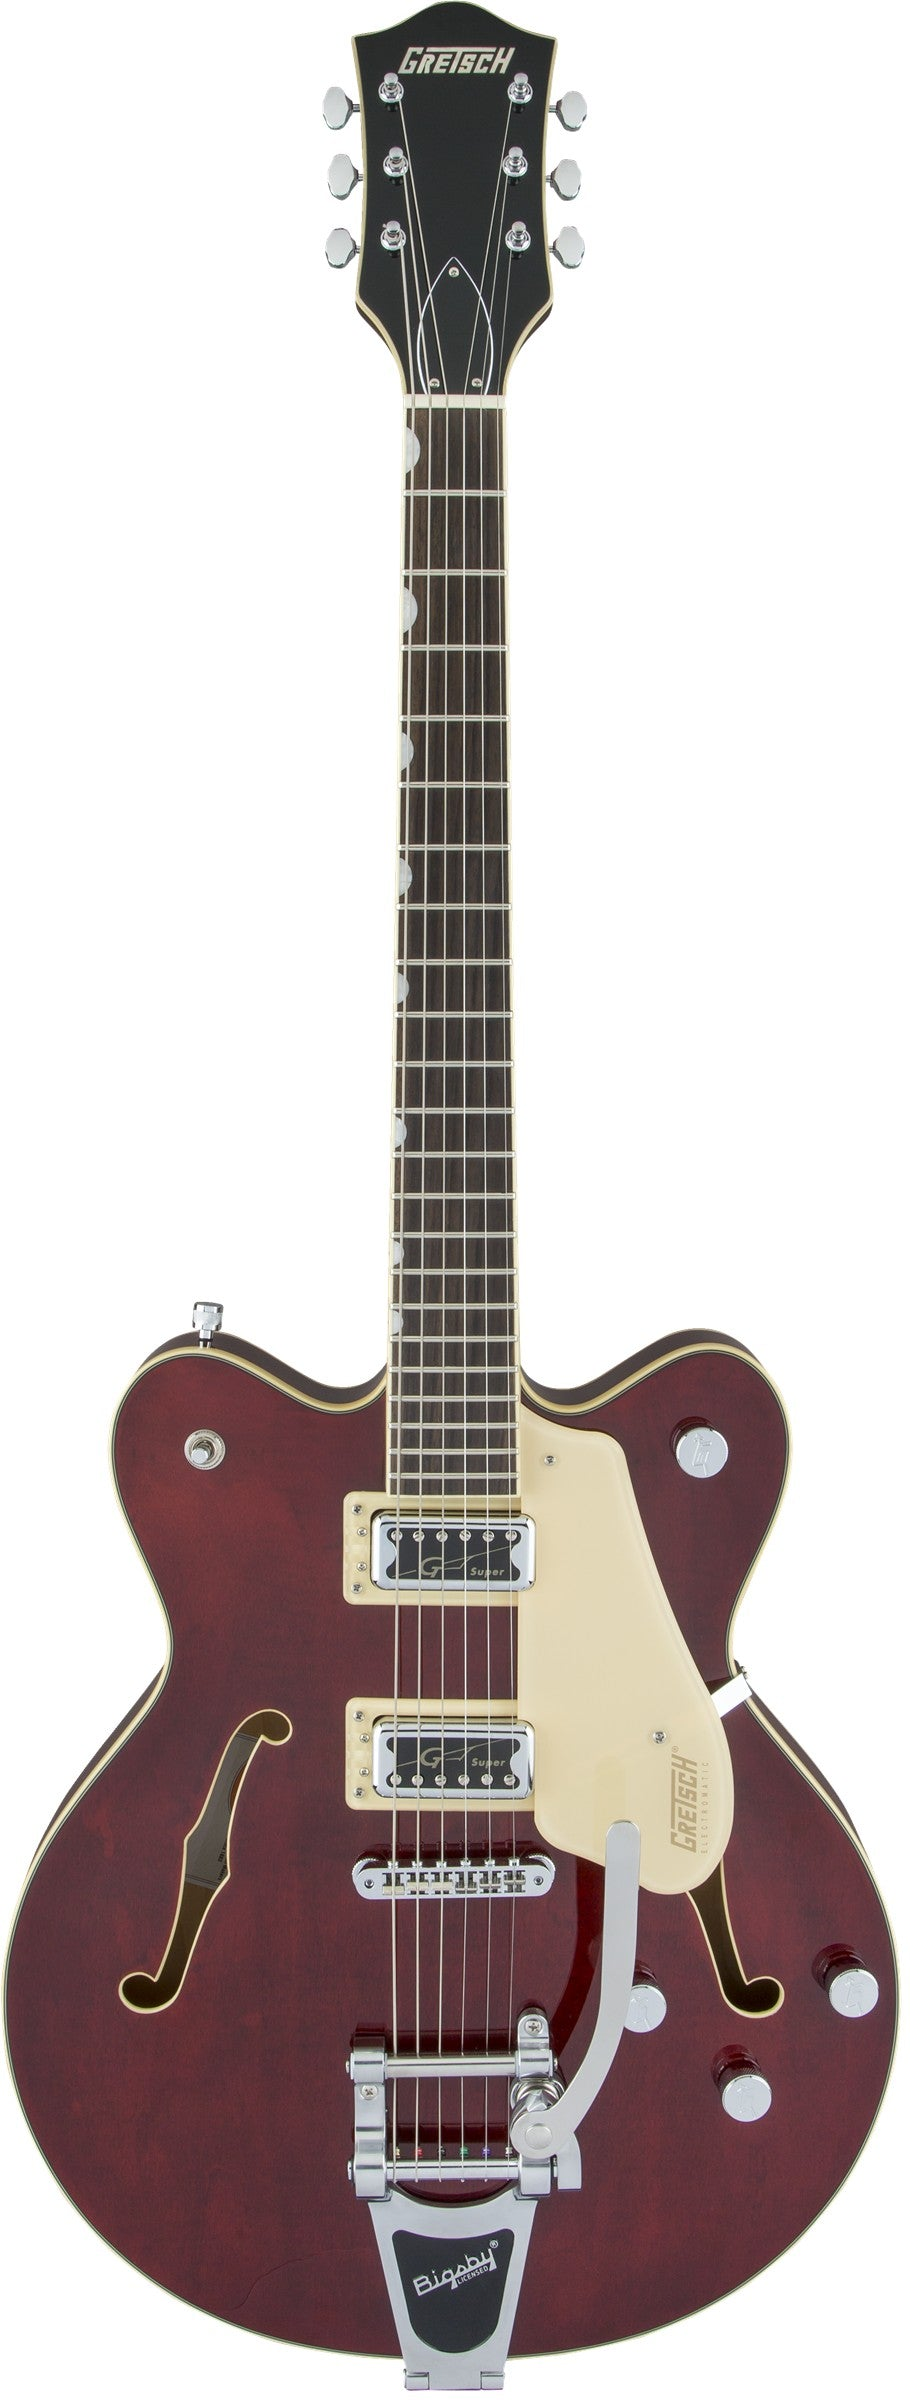 Gretsch G5622T Electromatic Center Block Electric Guitar W/Bigsby, Rosewood Fingerboard